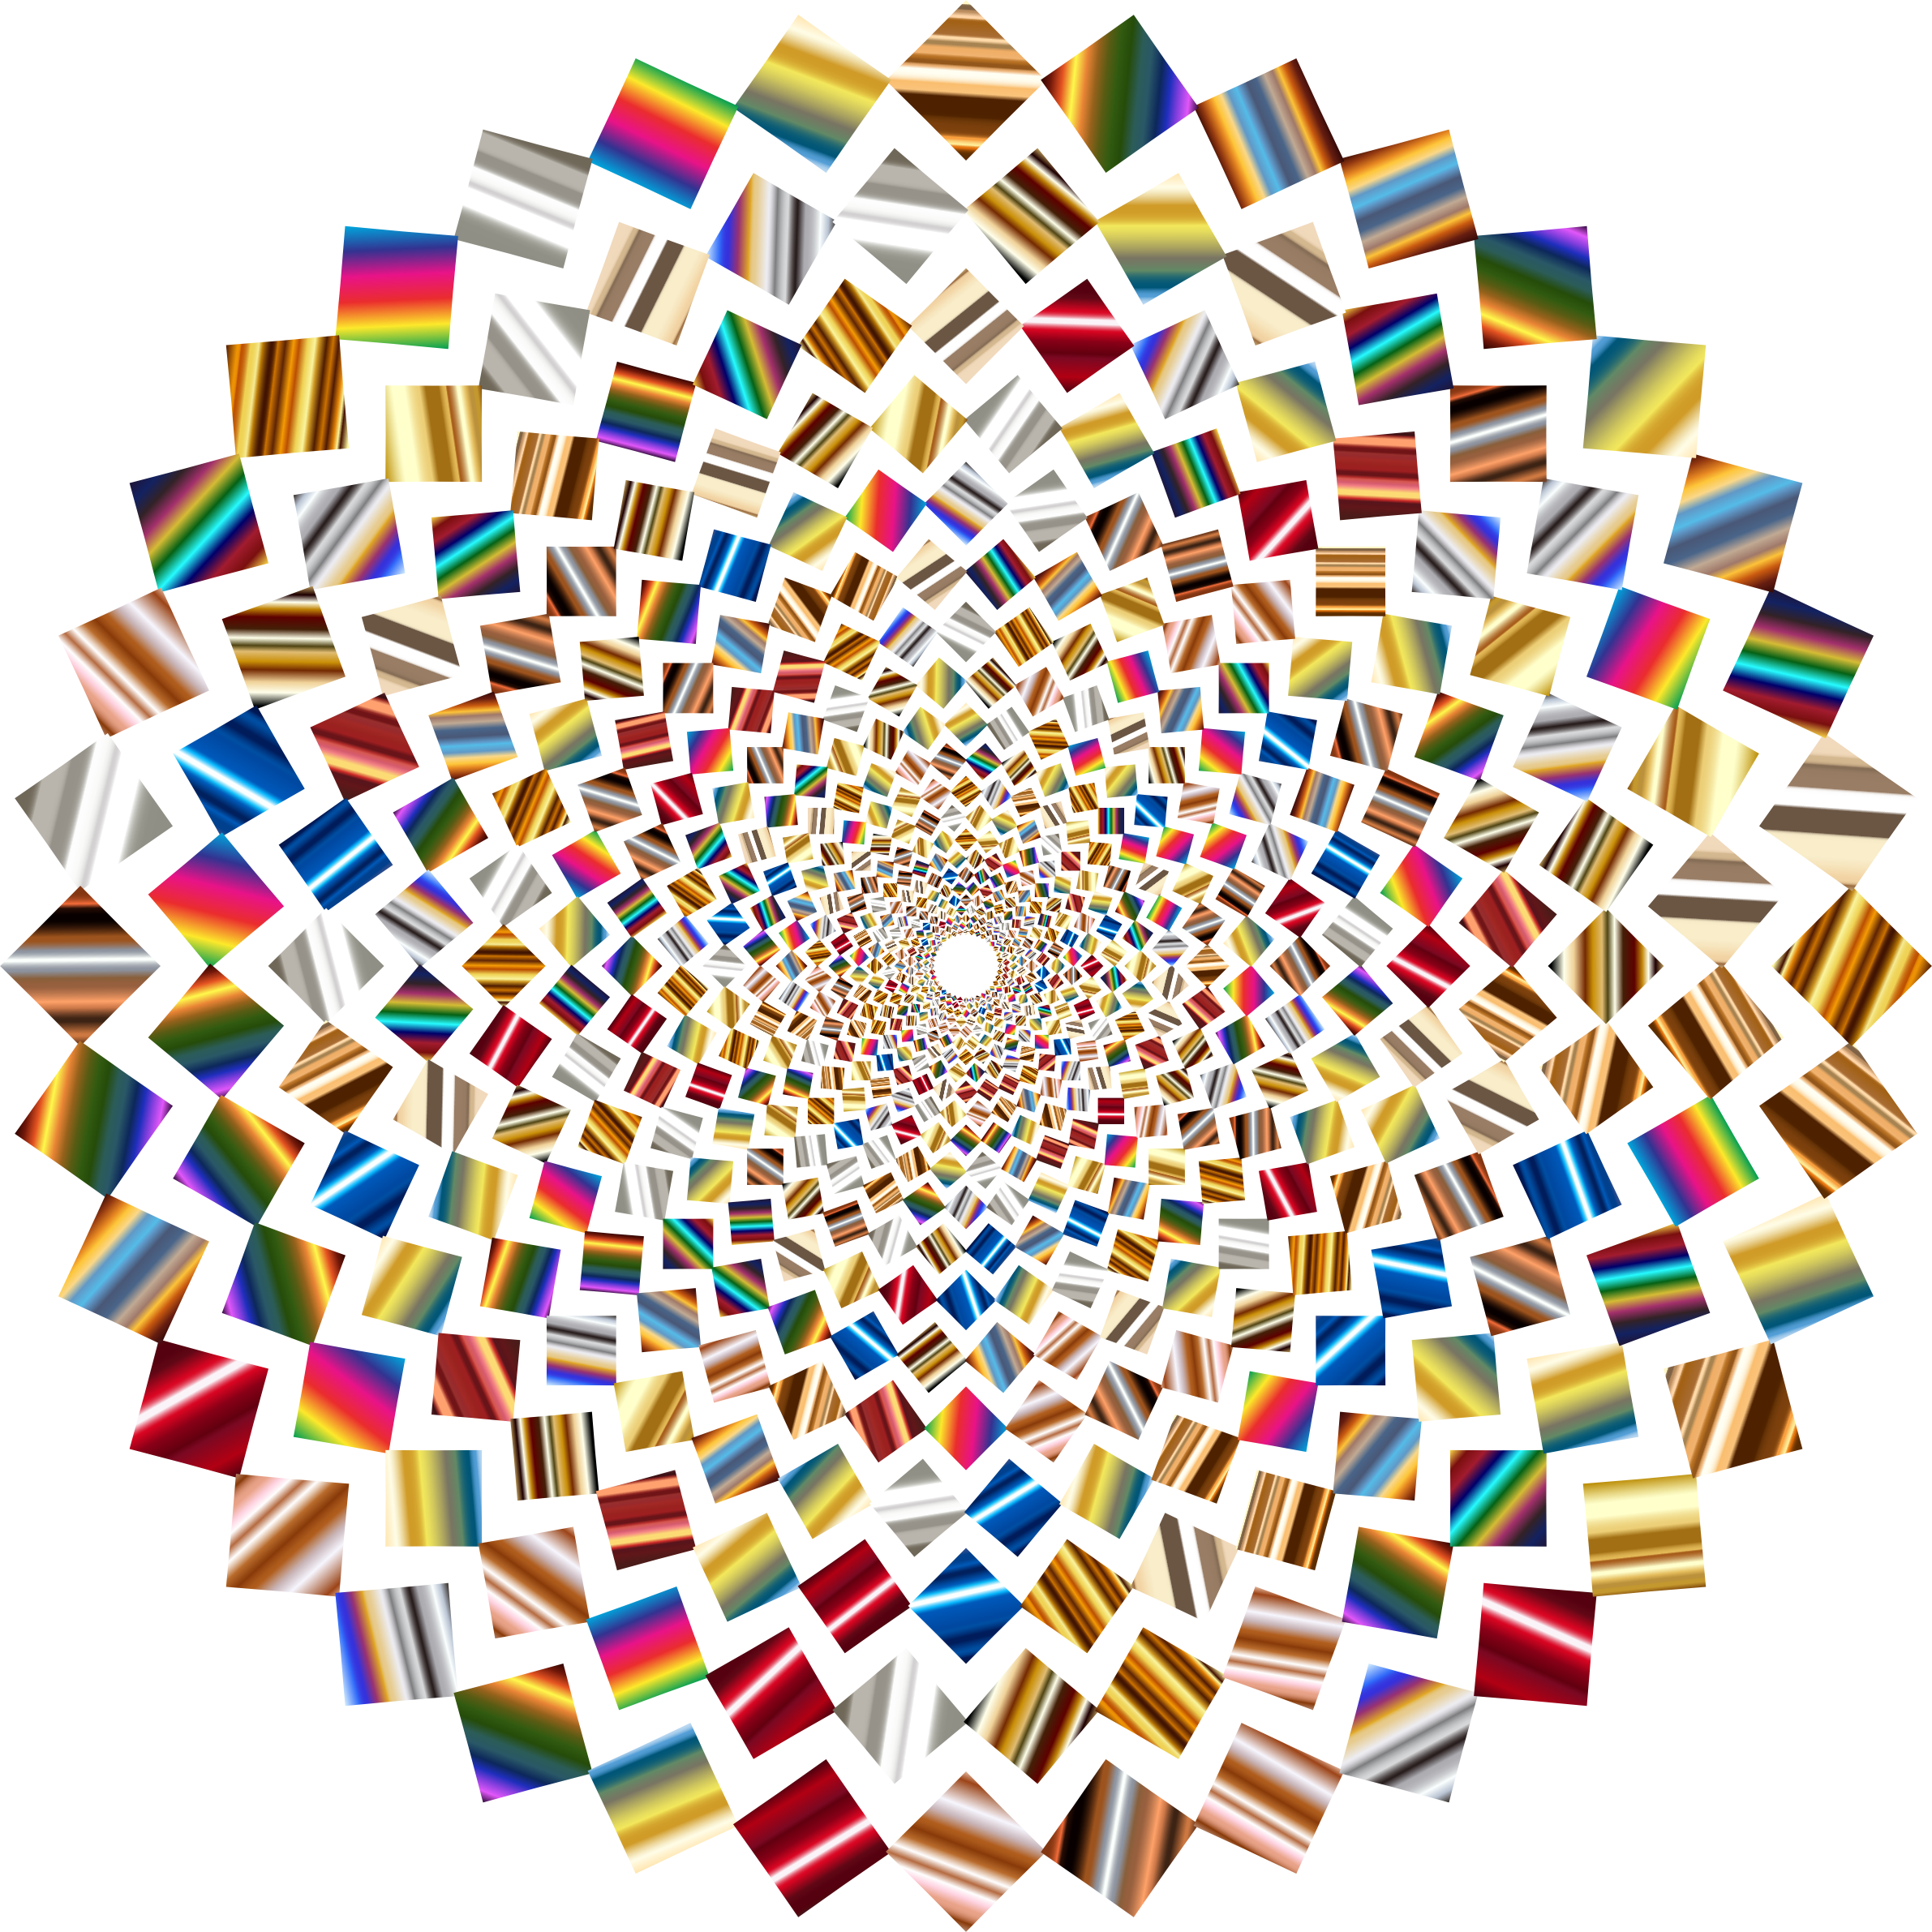 Psychedelic Colorful Concentric Squares Vortex by GDJ